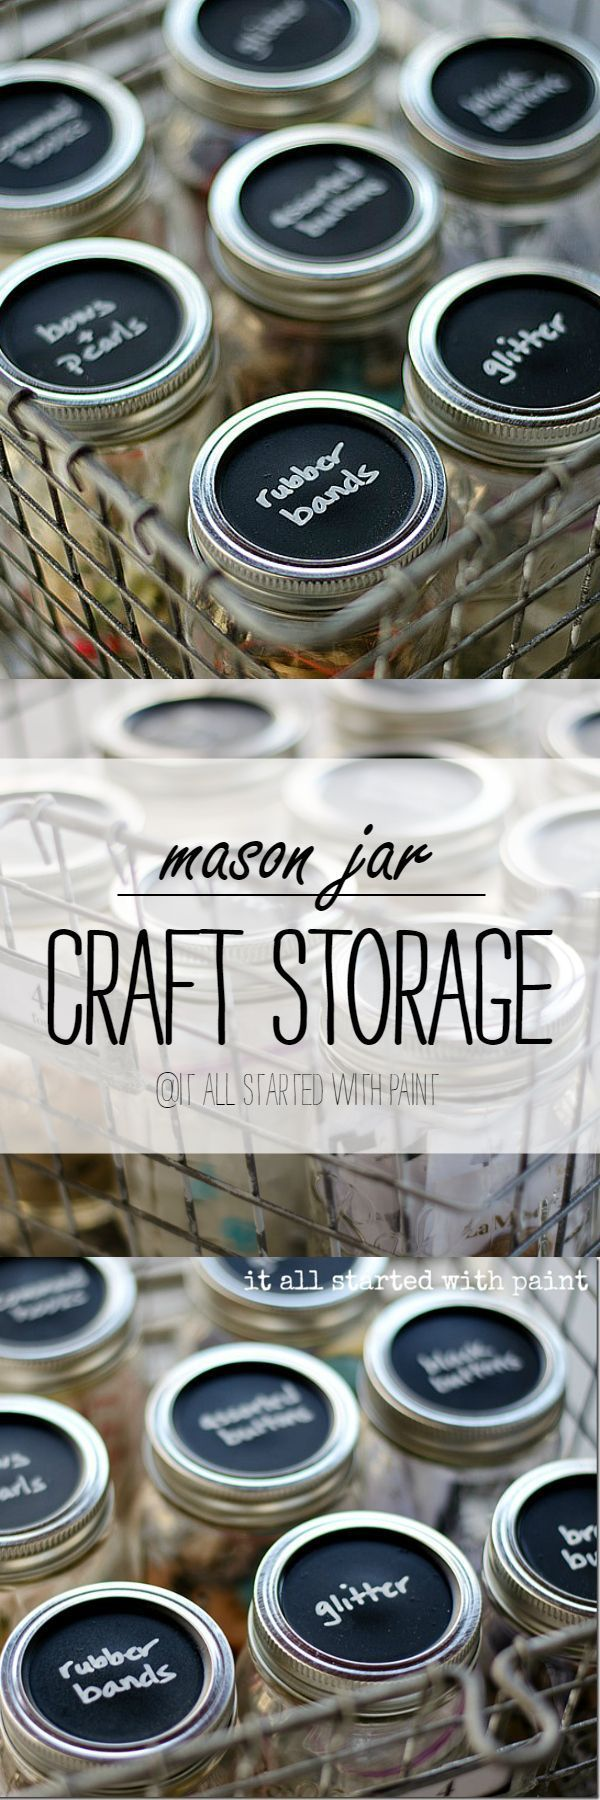 Mason Jar Storage - Craft Storage Ideas with Mason Jars   - Chalkboard Paint @Linda @ it all started with paint blog